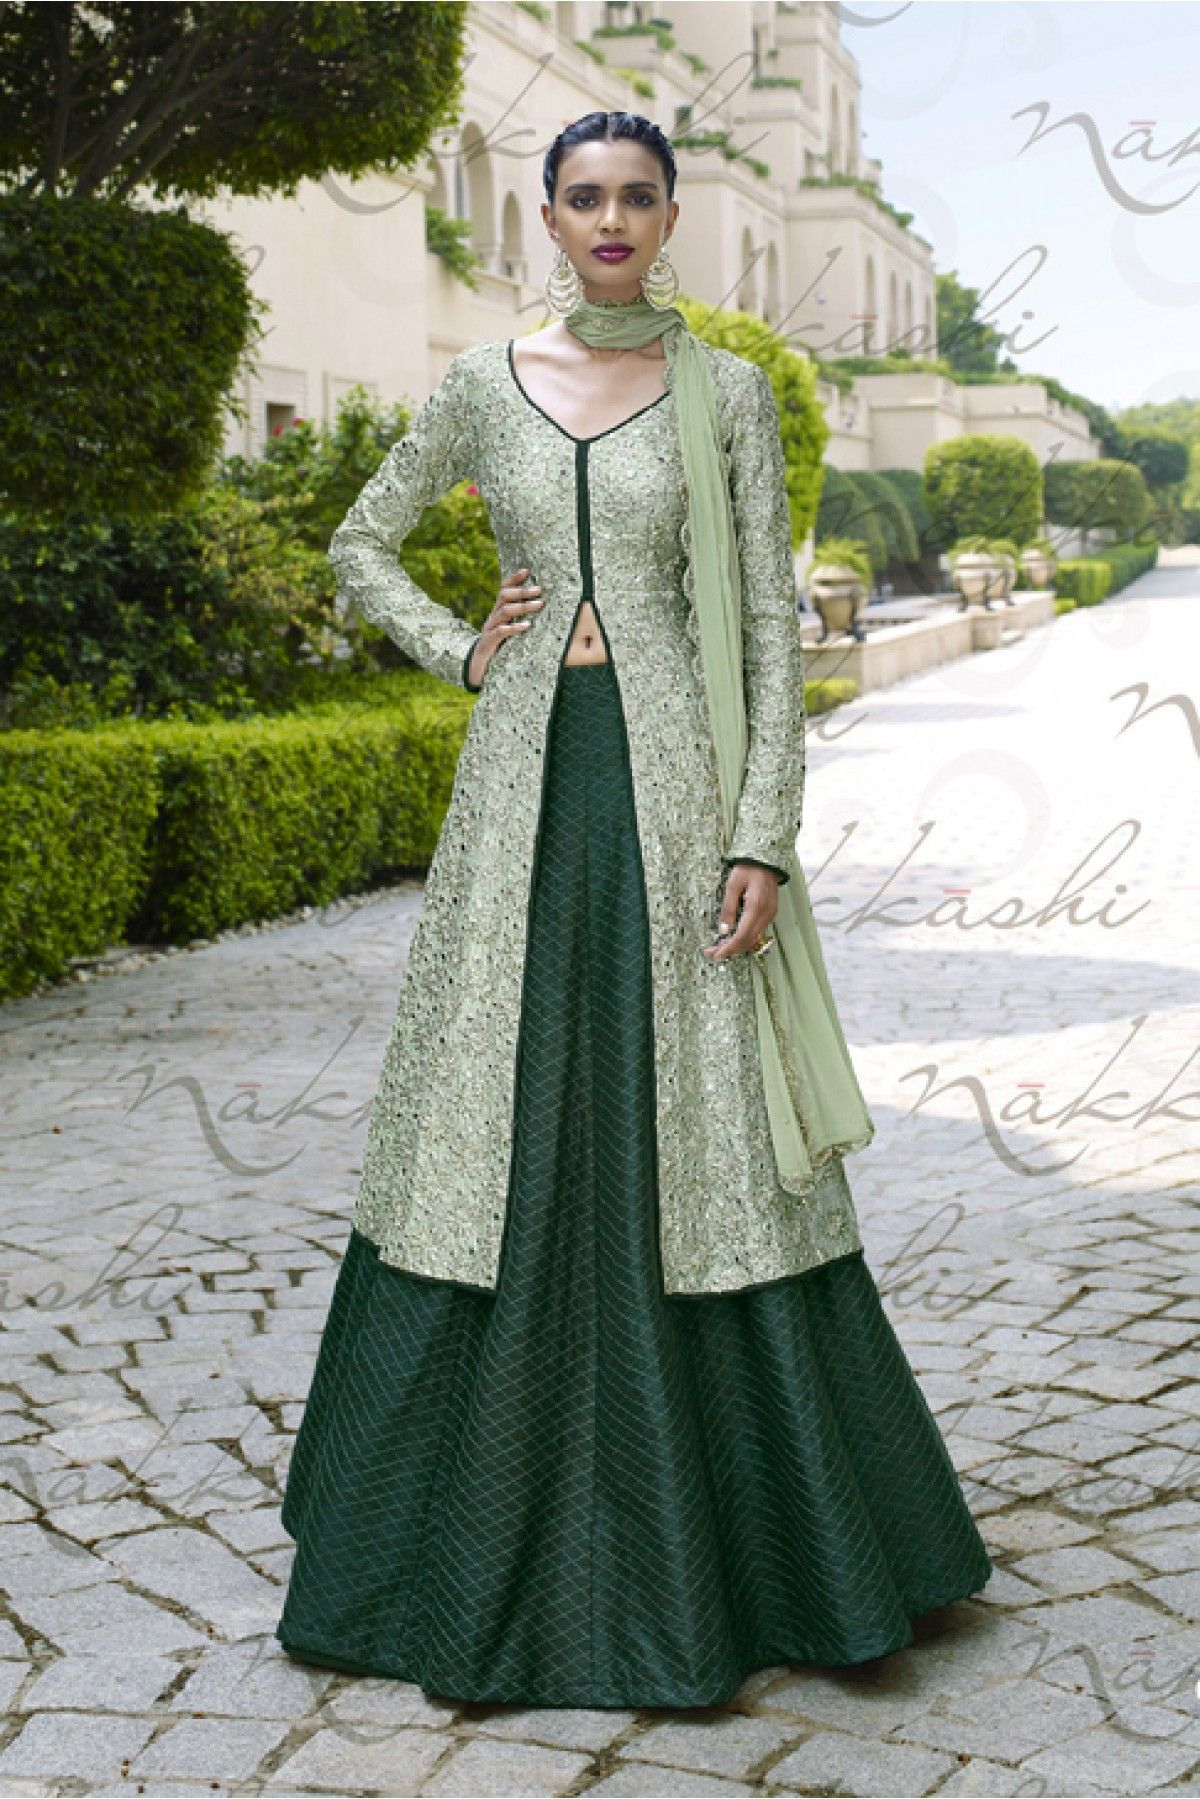 0e38e592f2 Buy Best price latest designer Nakkashi Mono Net and Santoon Designer Suit  In Green Colour online in india @Ninecolours.com! Cash on Delivery  Available!